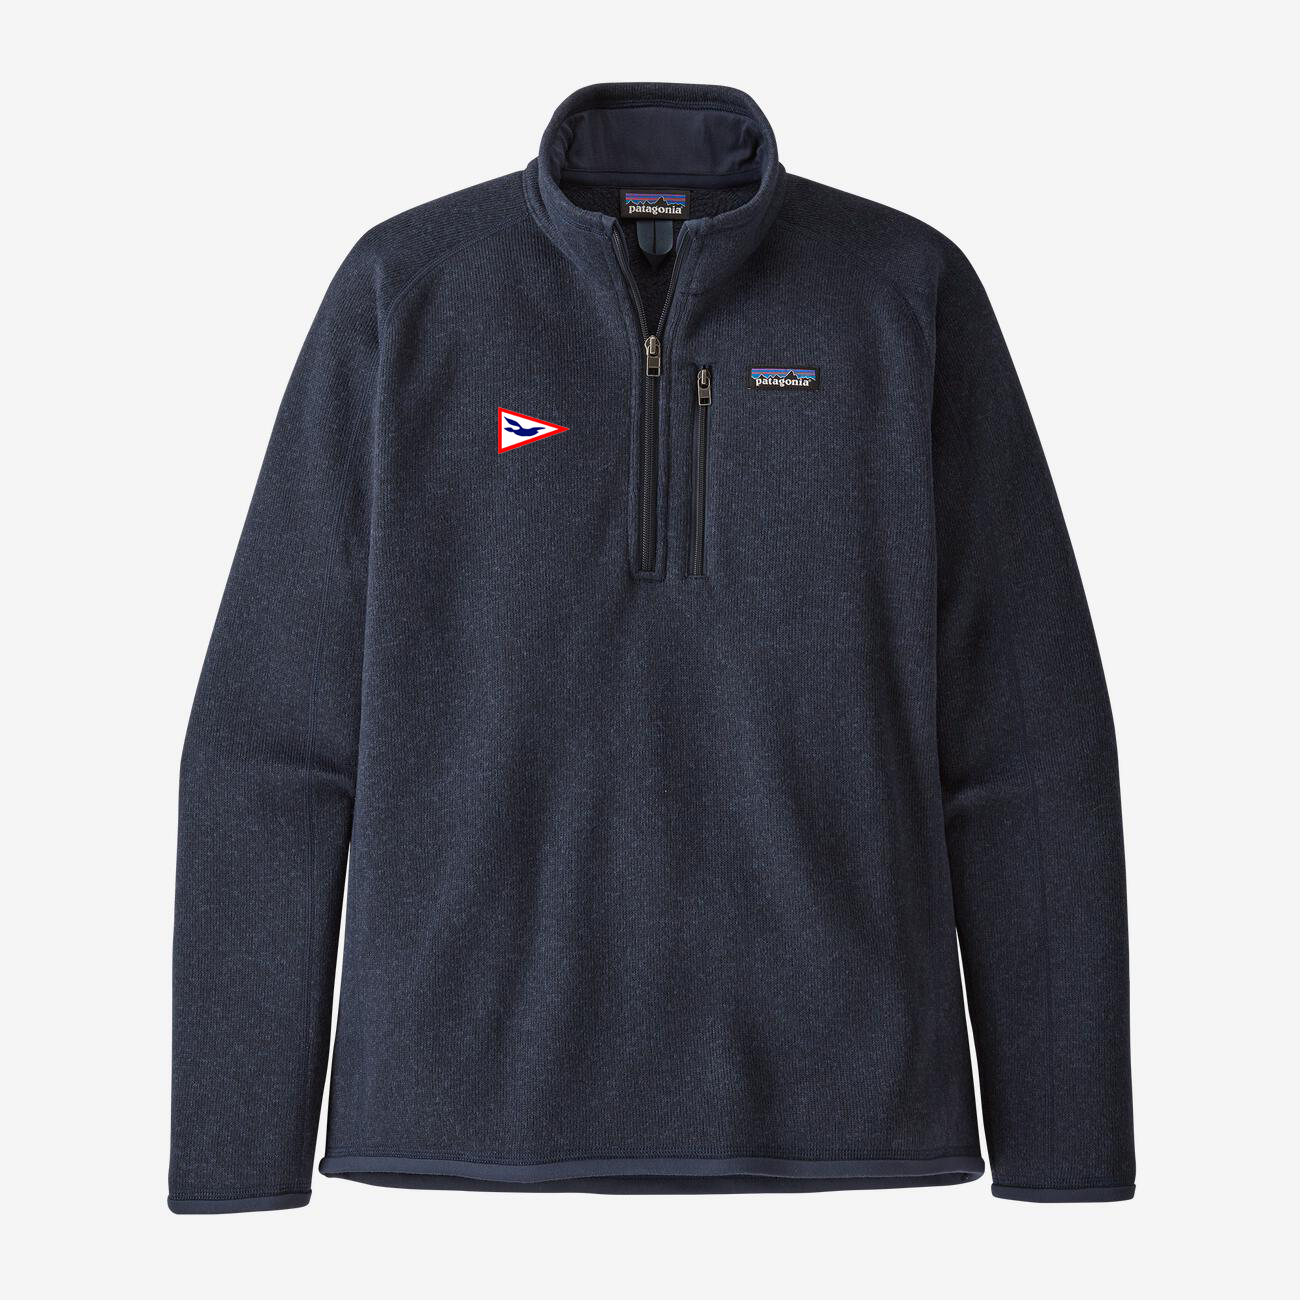 Duck Island Yacht Club - Patagonia Men's Better Sweater 1/4 Zip